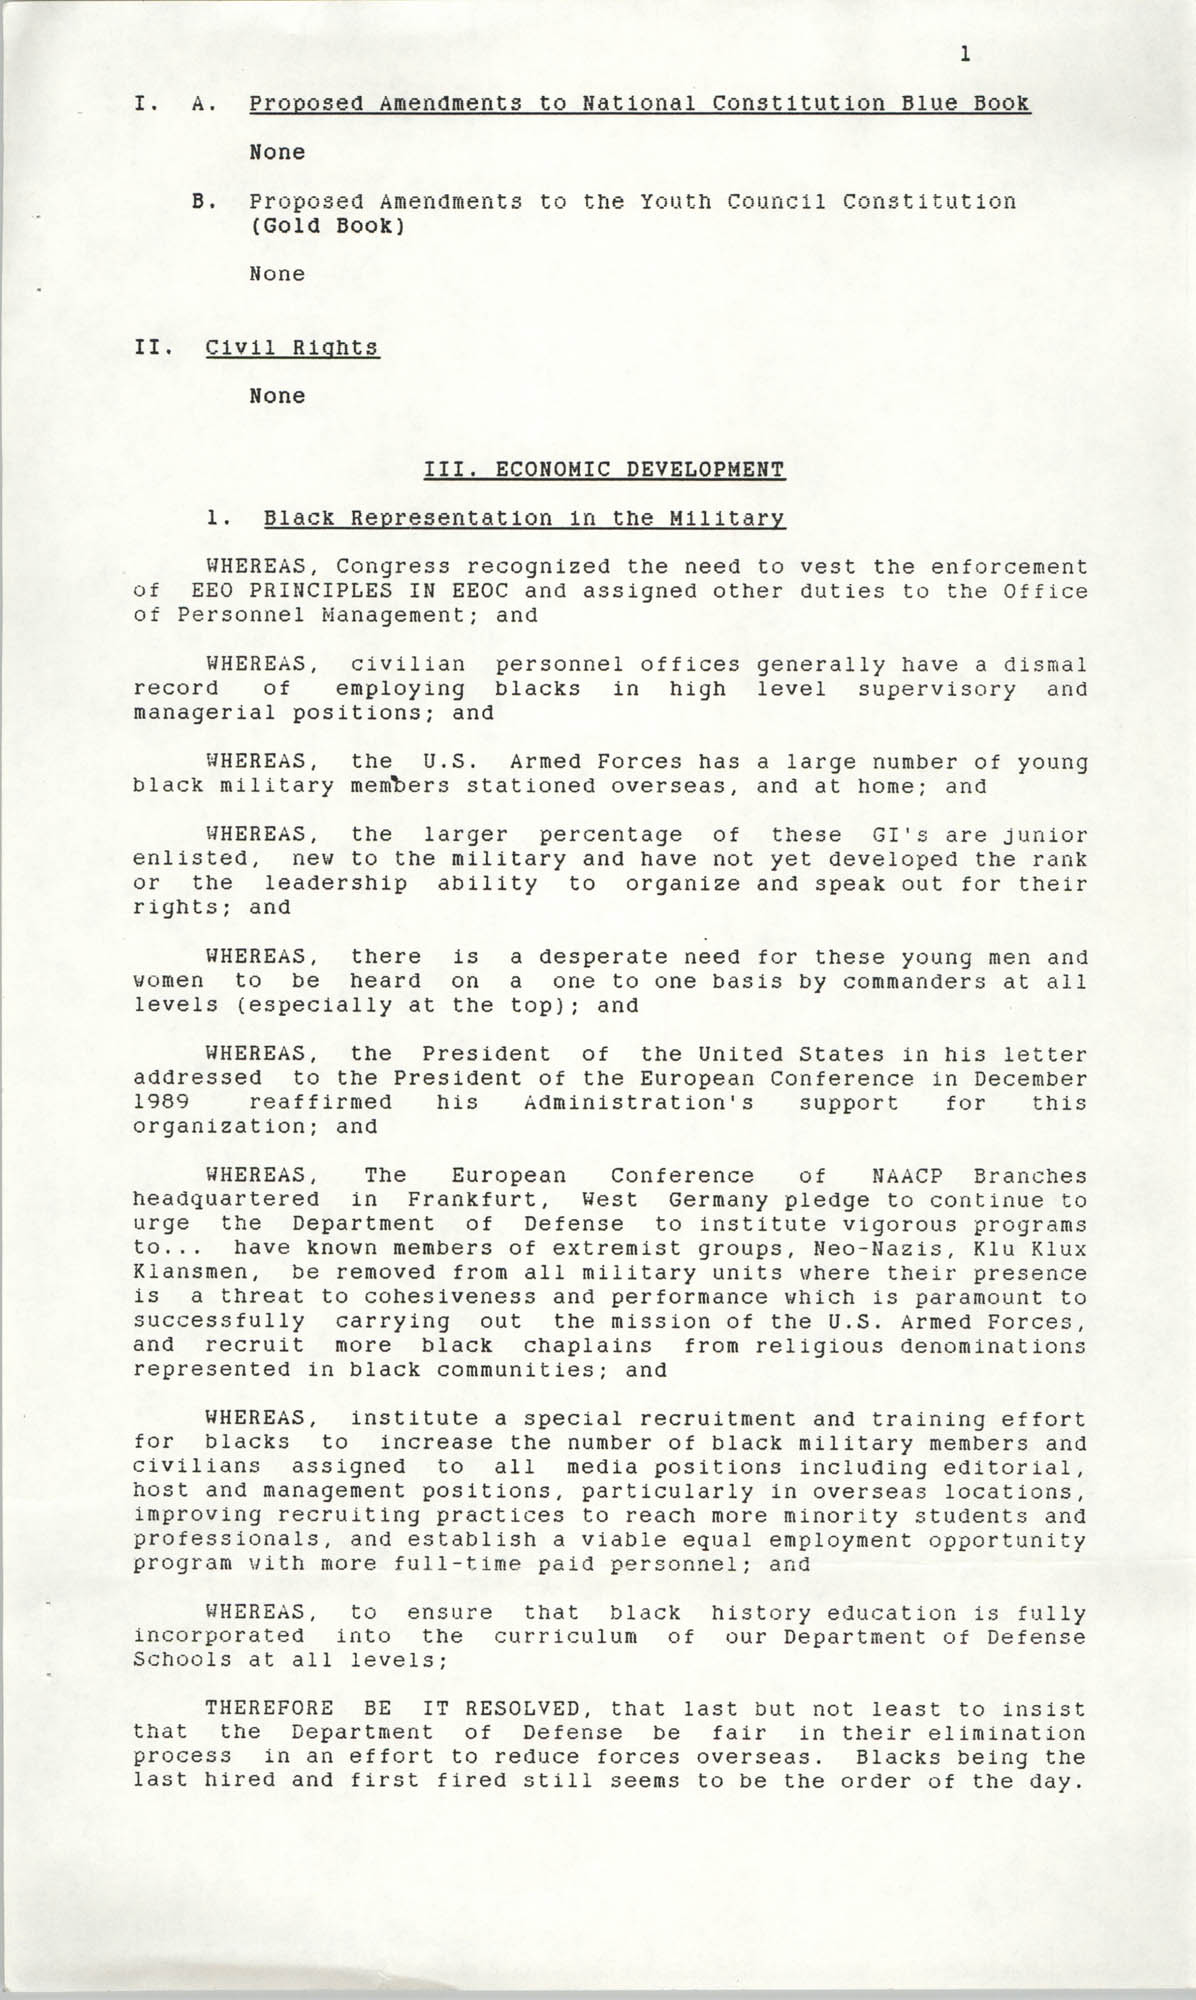 Resolutions Submitted Under Article X, Section 2 of the Constitution of the NAACP, 1990, Page 1